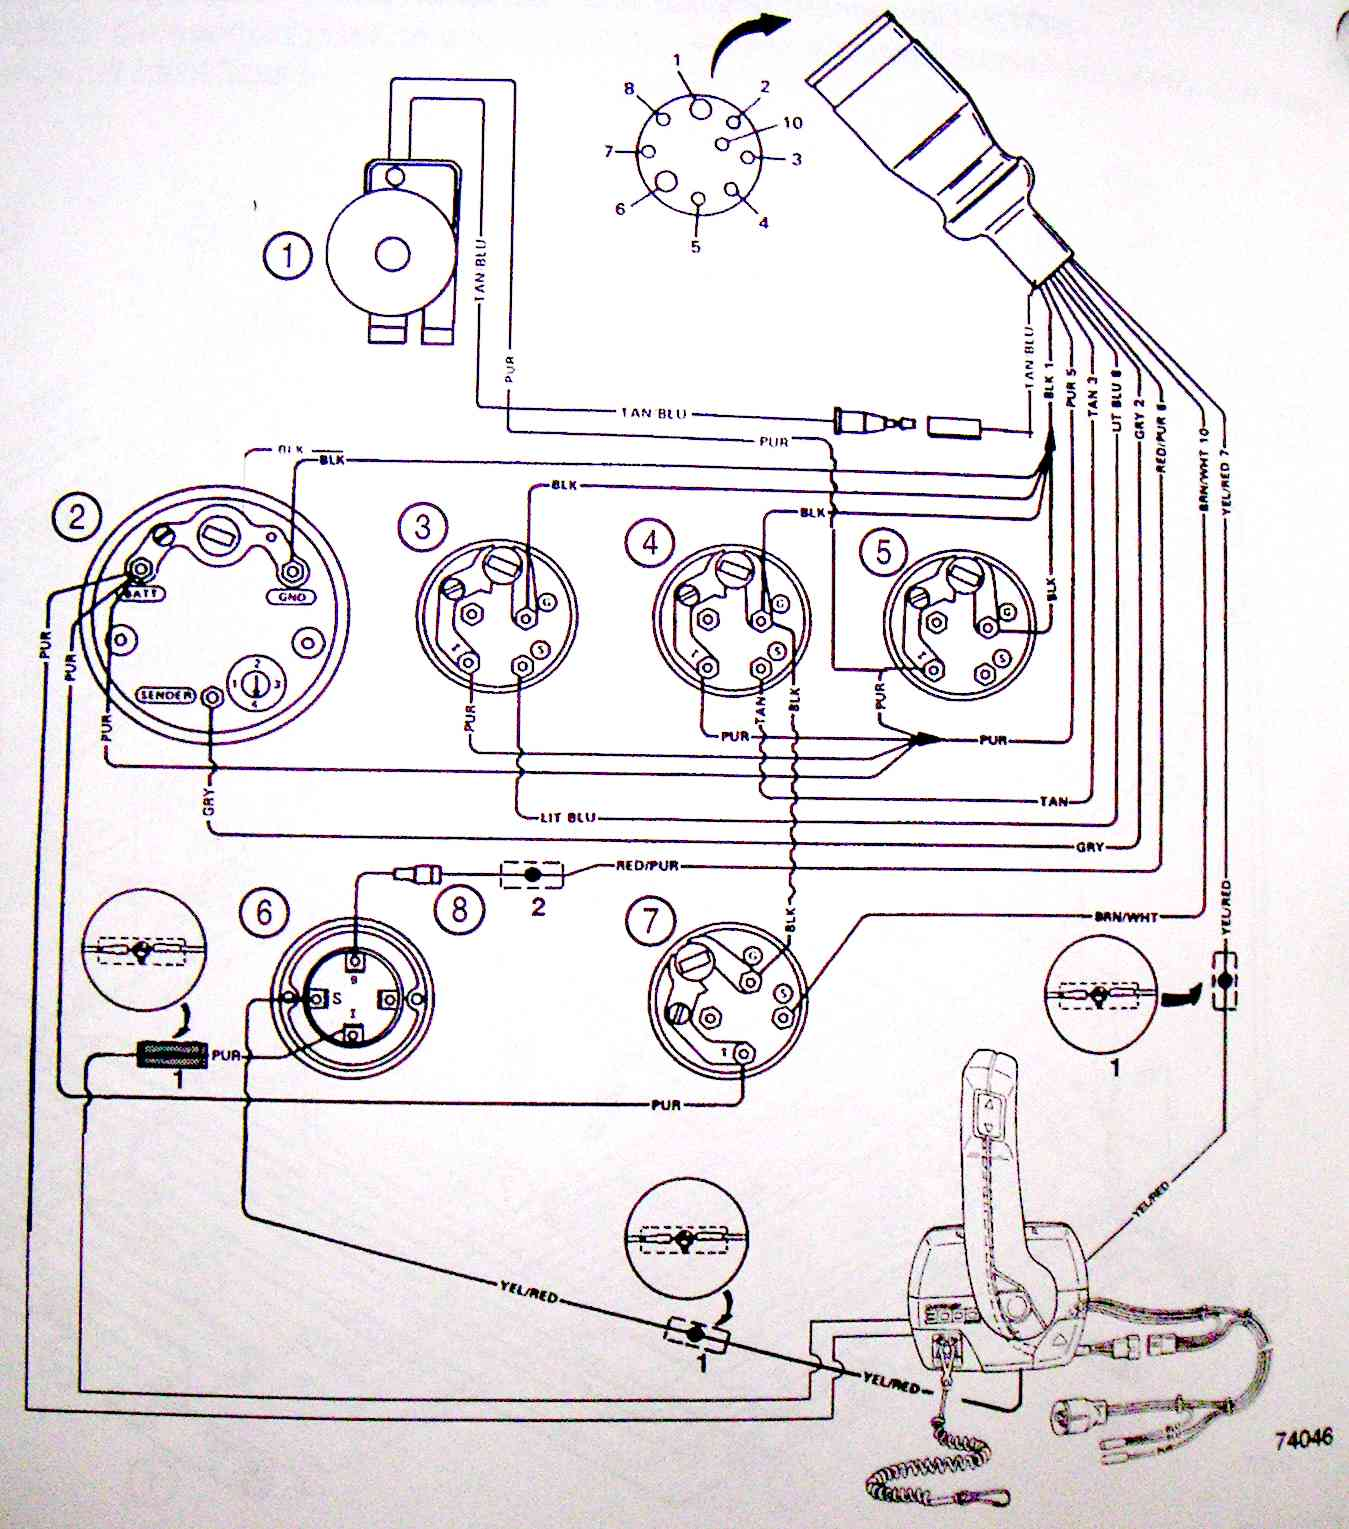 BoatHarness74046 yamaha outboard motor wiring diagrams the wiring diagram volvo penta wiring harness diagram at bayanpartner.co